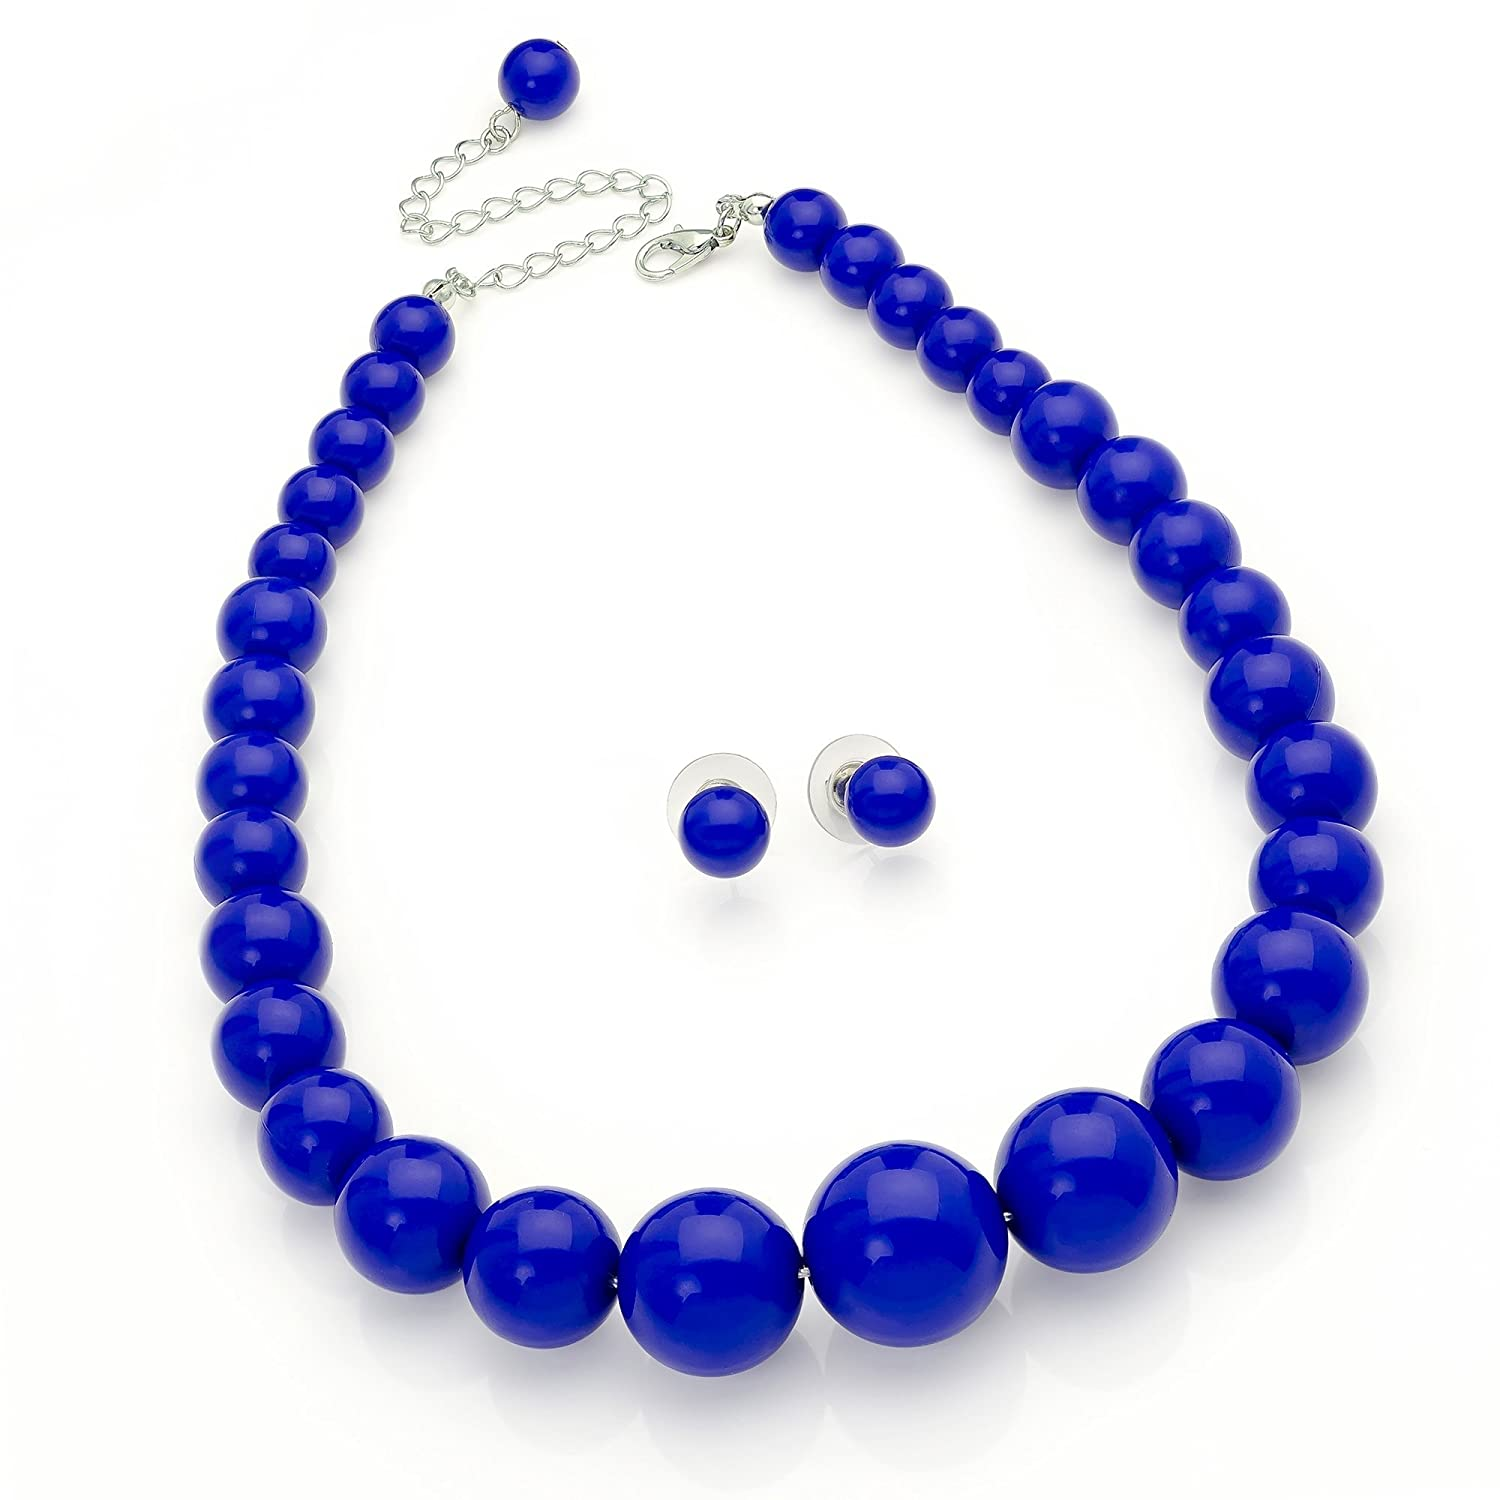 beads livemaster made necklace bead blown blue of lampwork item hollow hand shop on bubbles online from